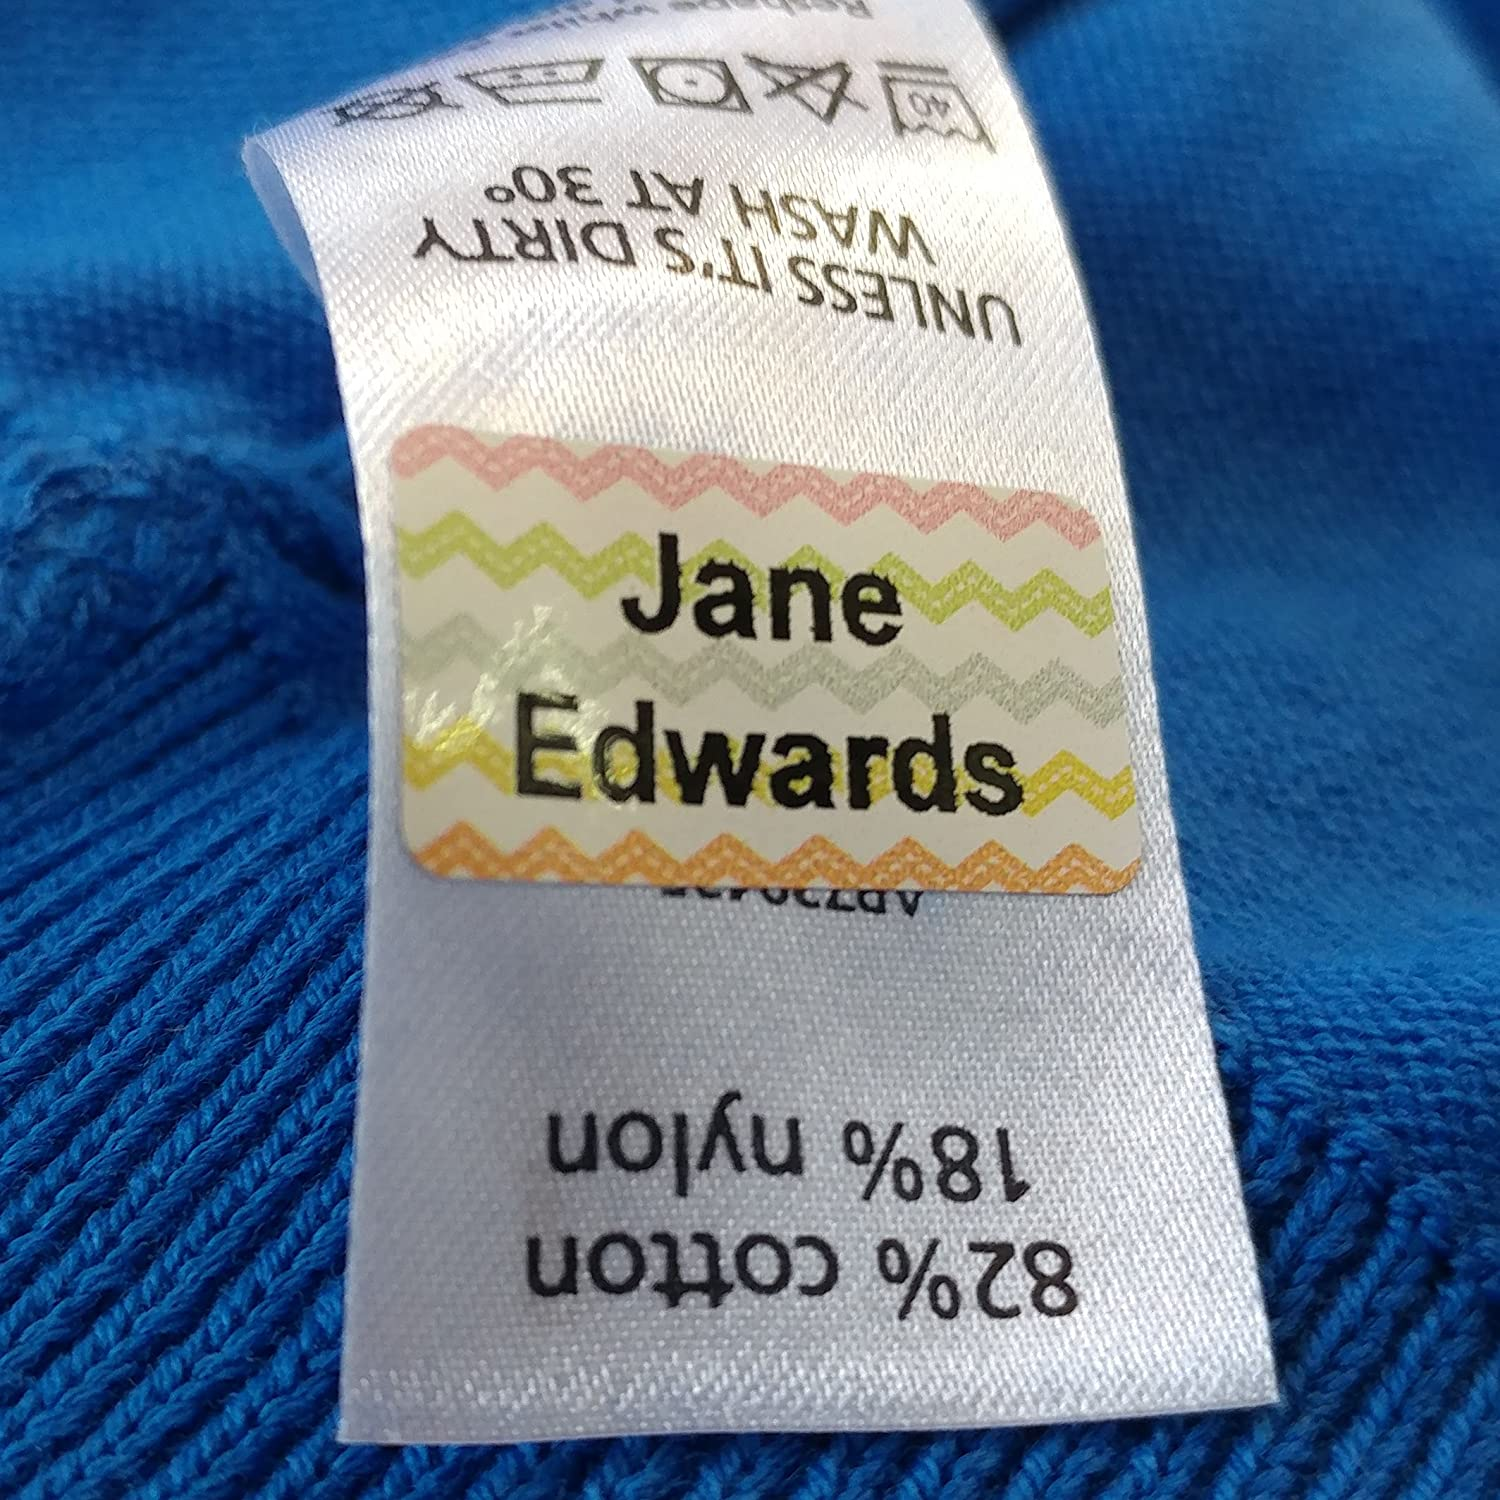 Funky Stick 'n Wash Clothing Name Labels - No Sewing, No Ironing - Just Stick in! (120 Labels)